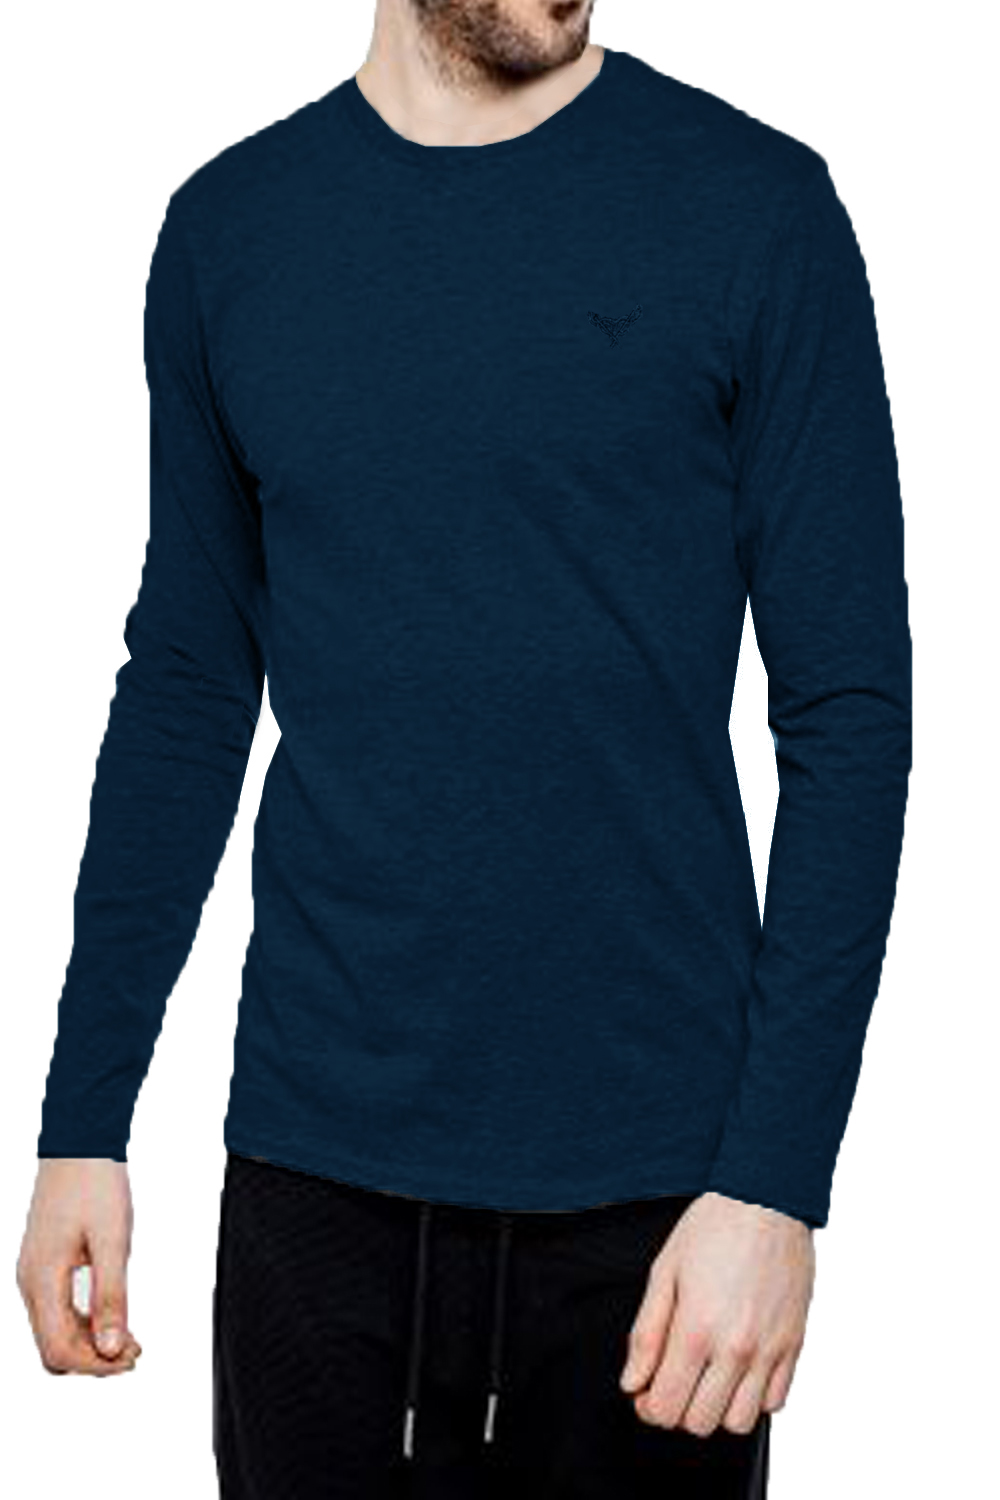 Threadbare-Mens-William-Long-Sleeve-T-Shirt-Cotton-Stretch-Round-Neck-Winter-Top thumbnail 6